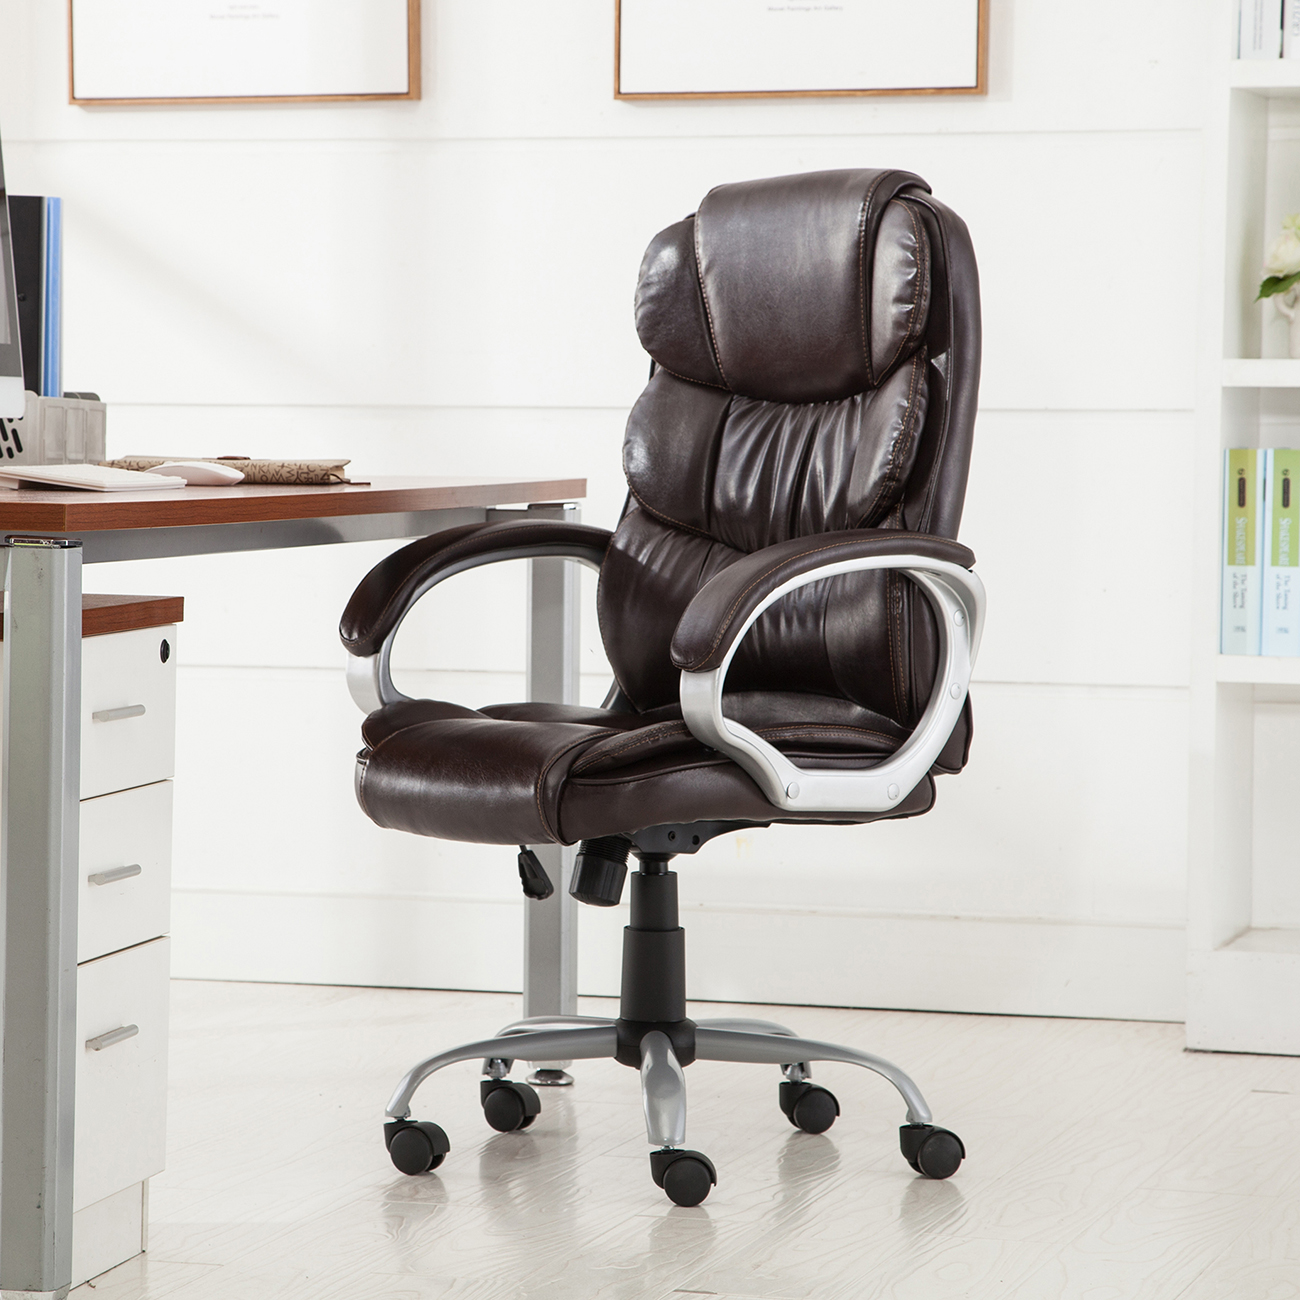 PU-Leather-Office-Rolling-Computer-Chair-Black-Mocha-High-Back-Executive-Desk thumbnail 10